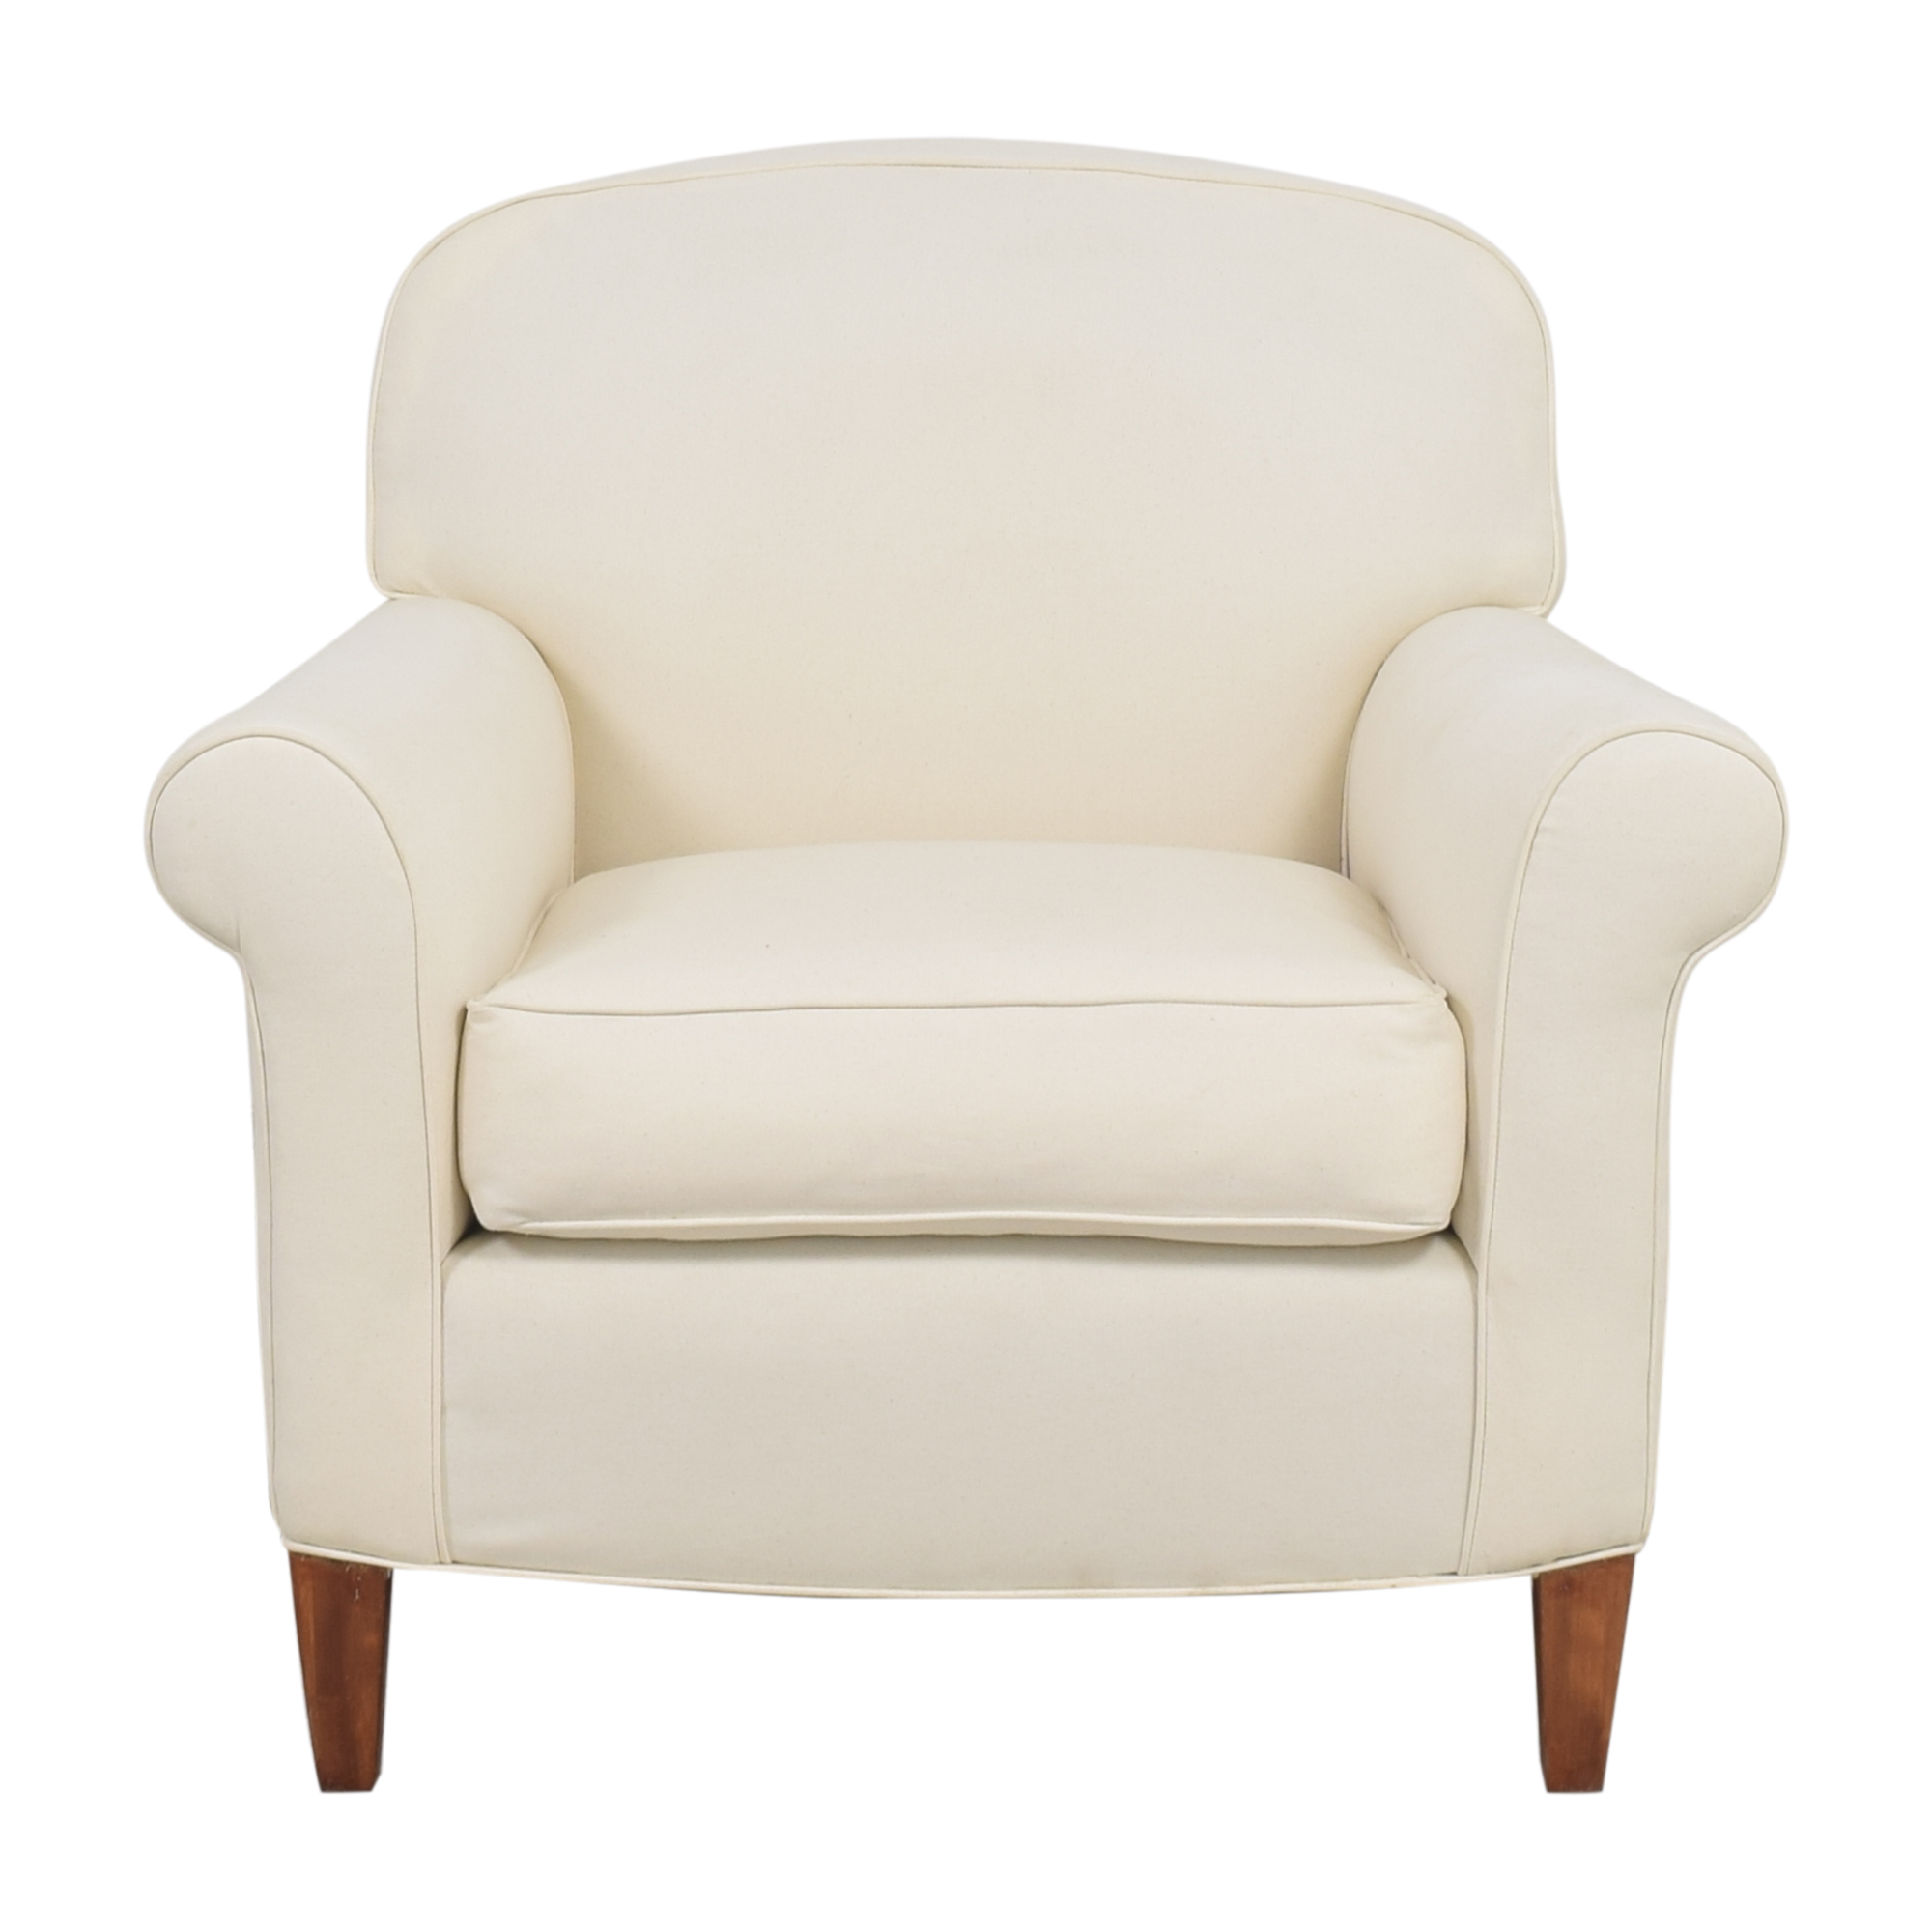 Roll Arm Accent Chair price